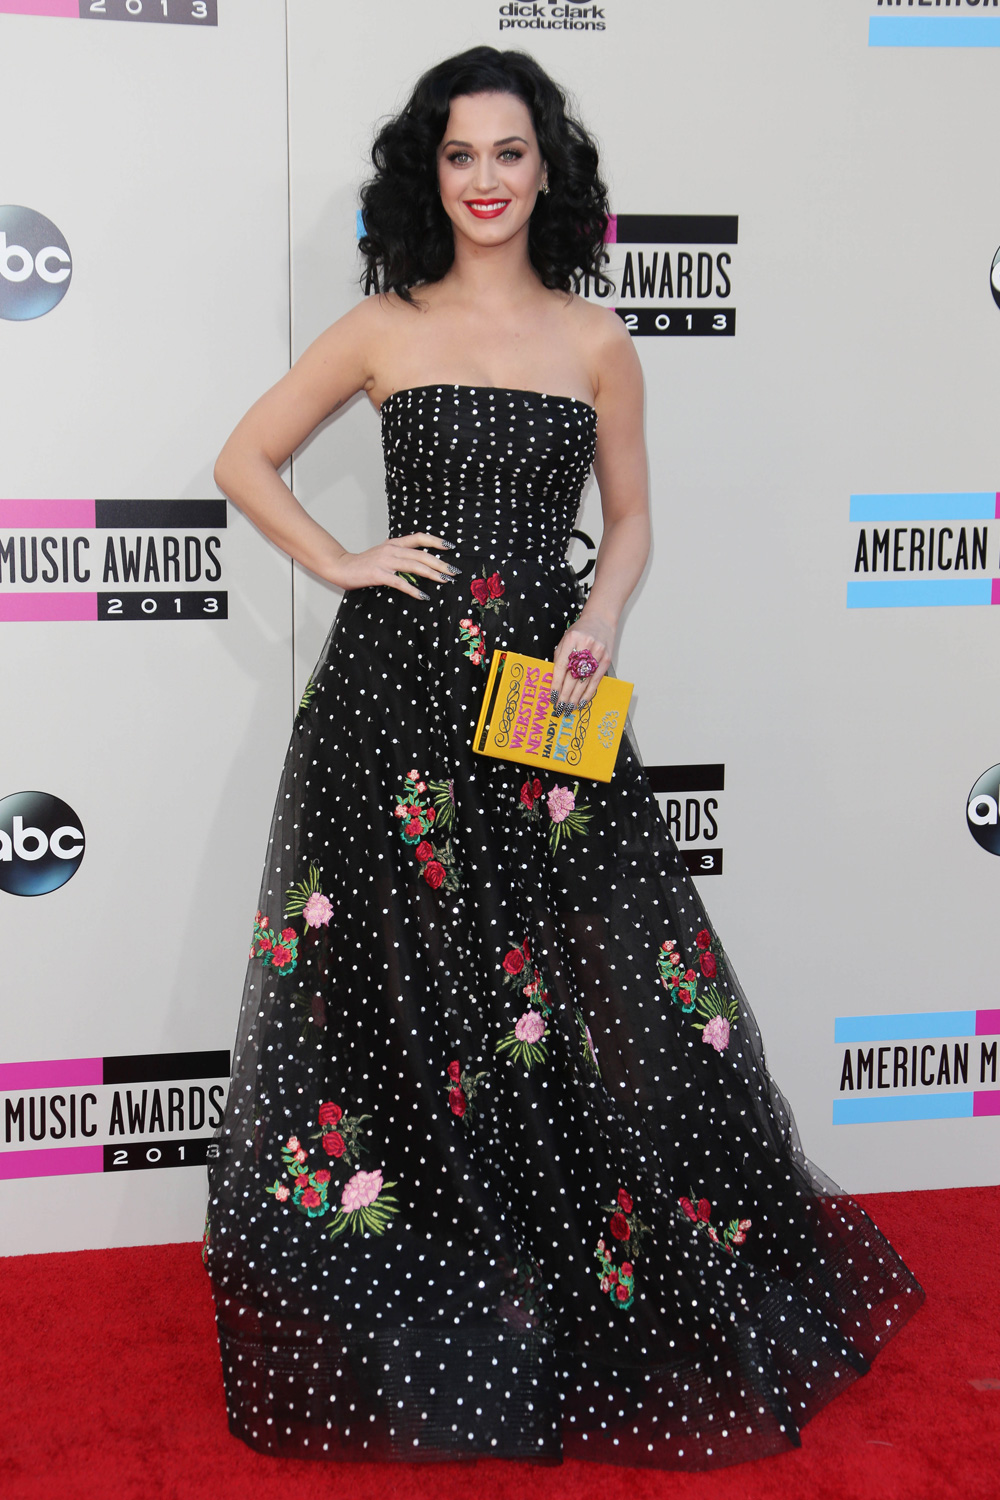 The American Music Awards: All The Must-See Outfits